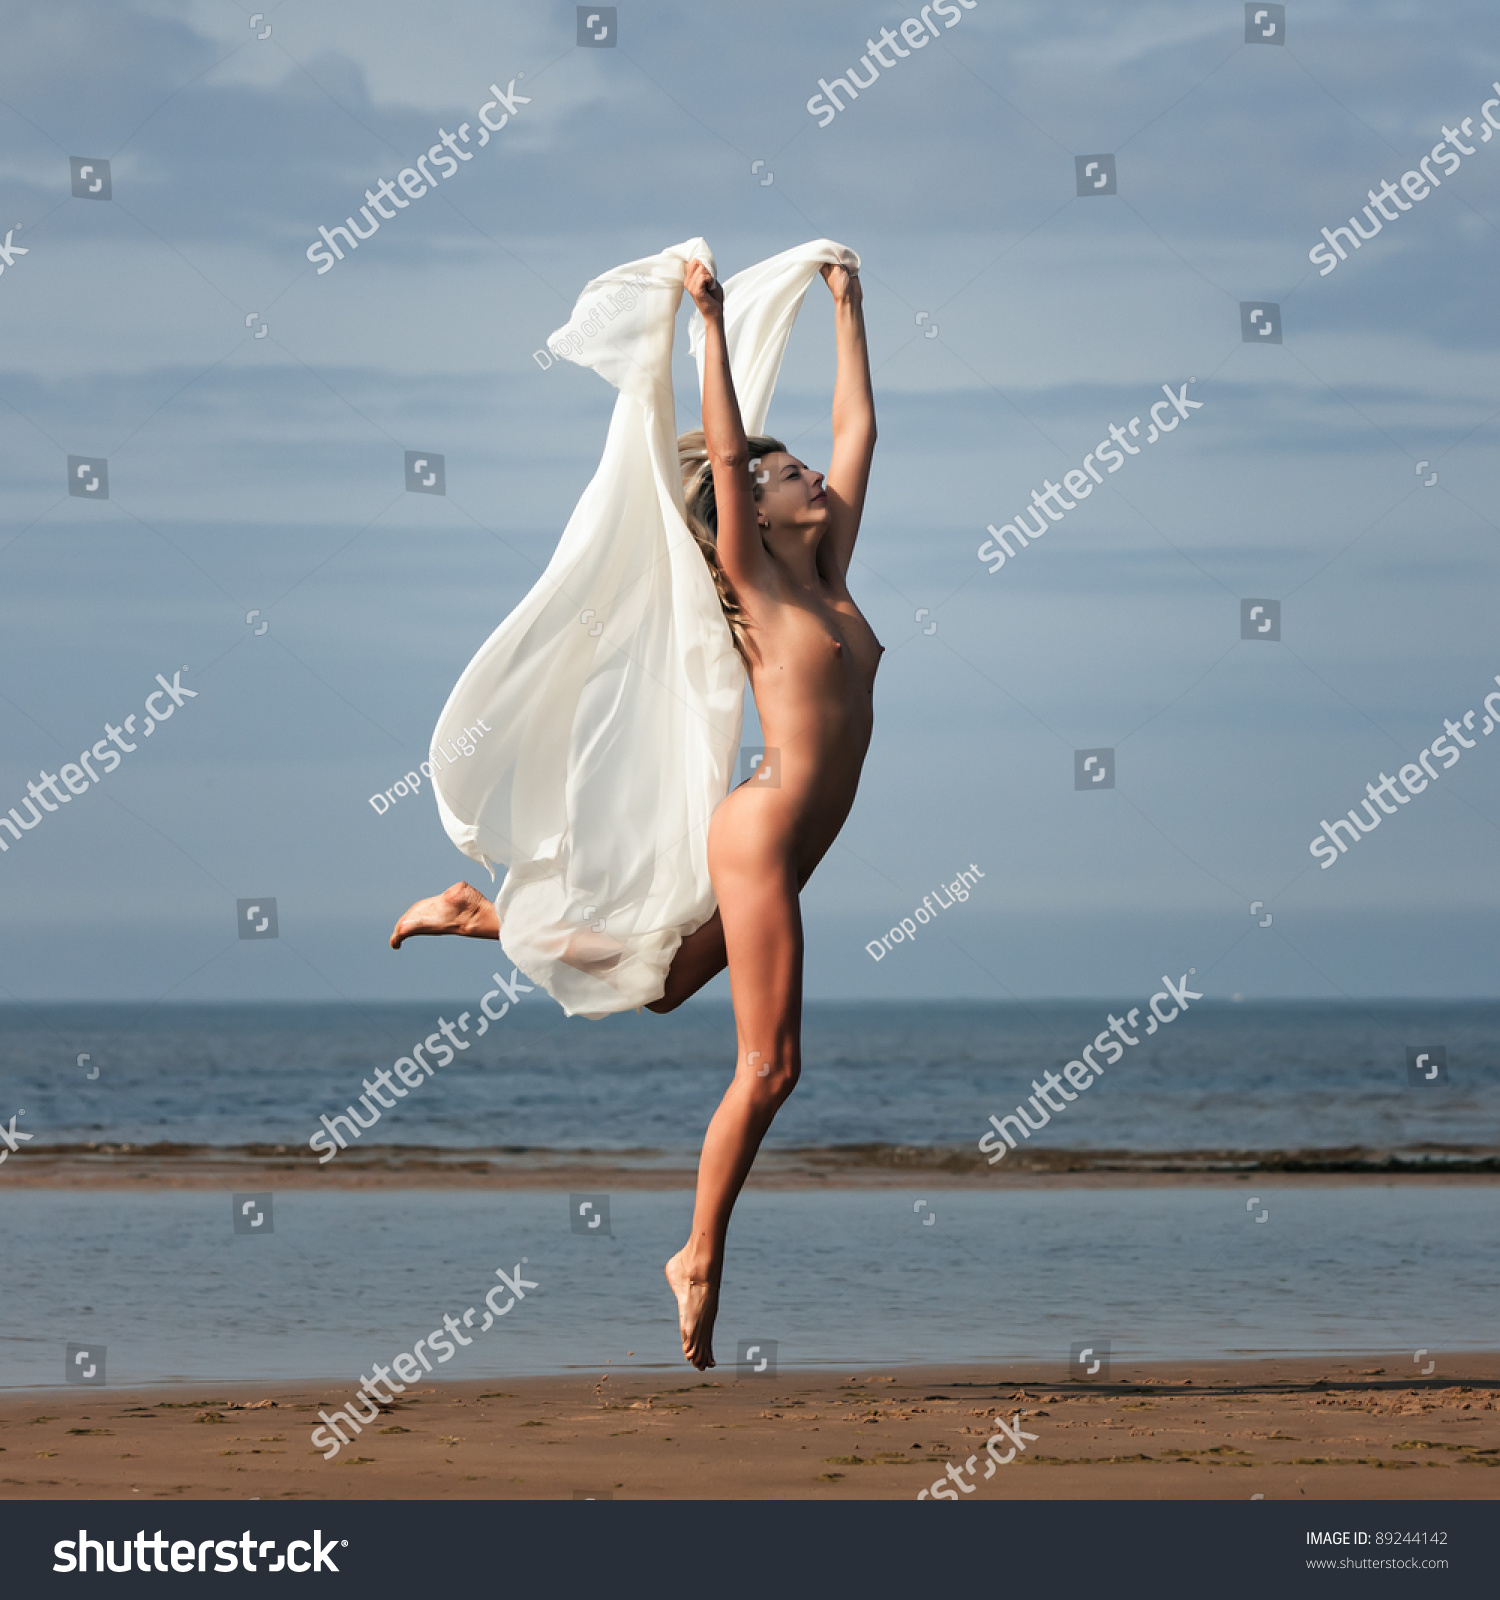 Apologise, can Nude girl jumping pic business